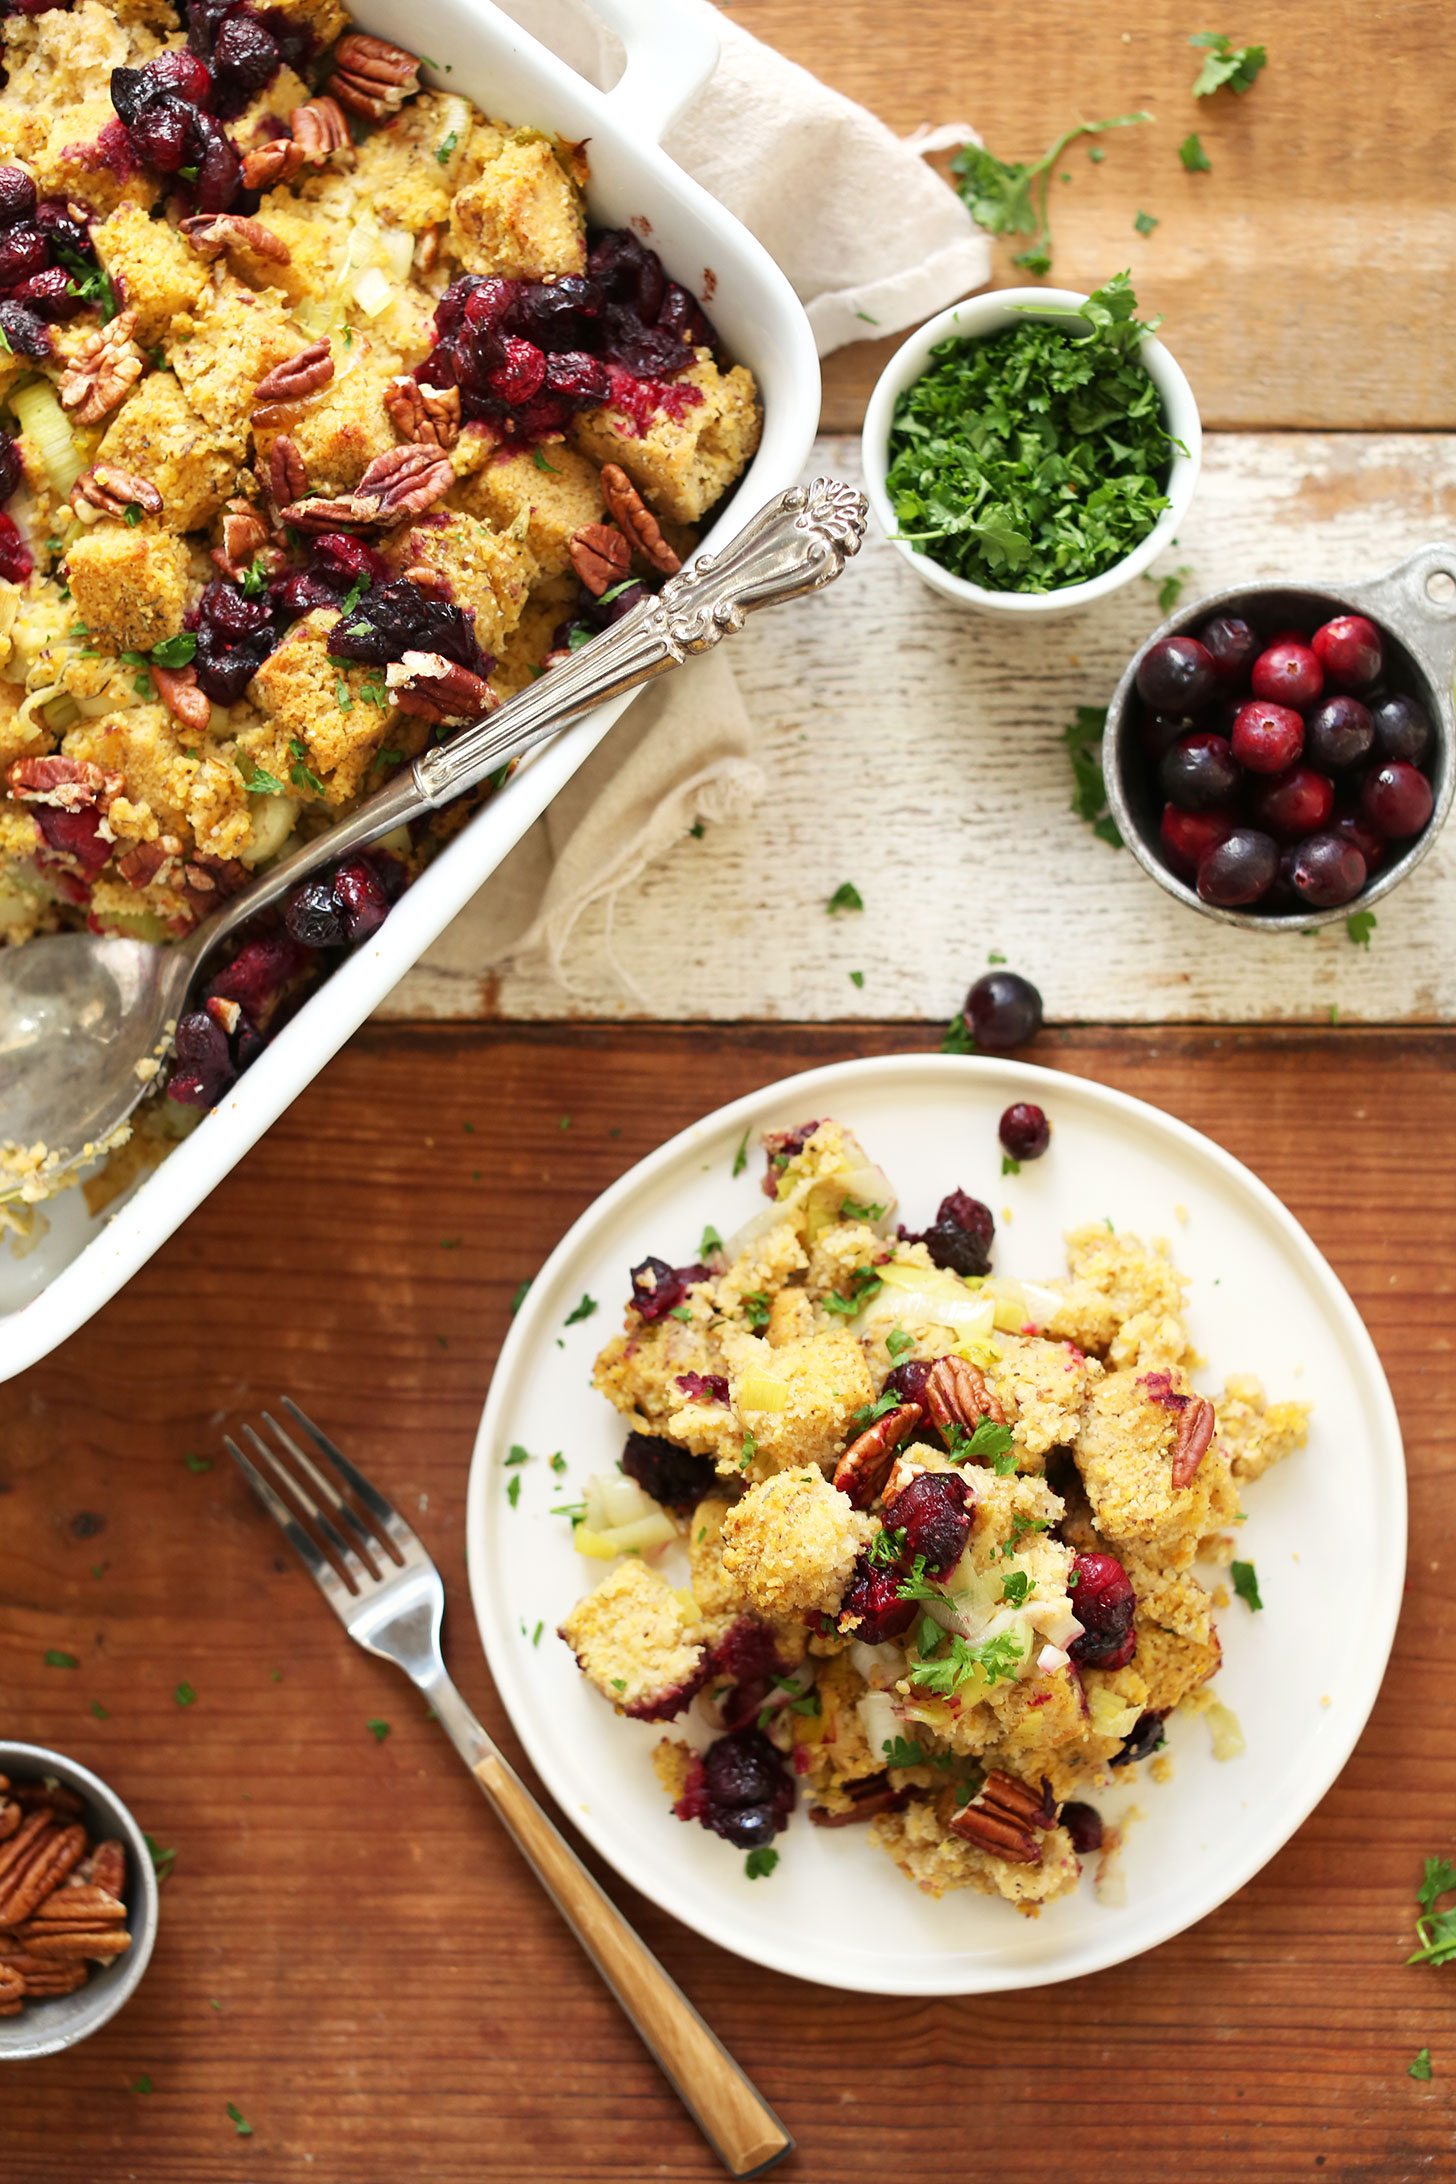 Baking dish and plate of Gluten-Free Vegan Cornbread Stuffing for Thanksgiving